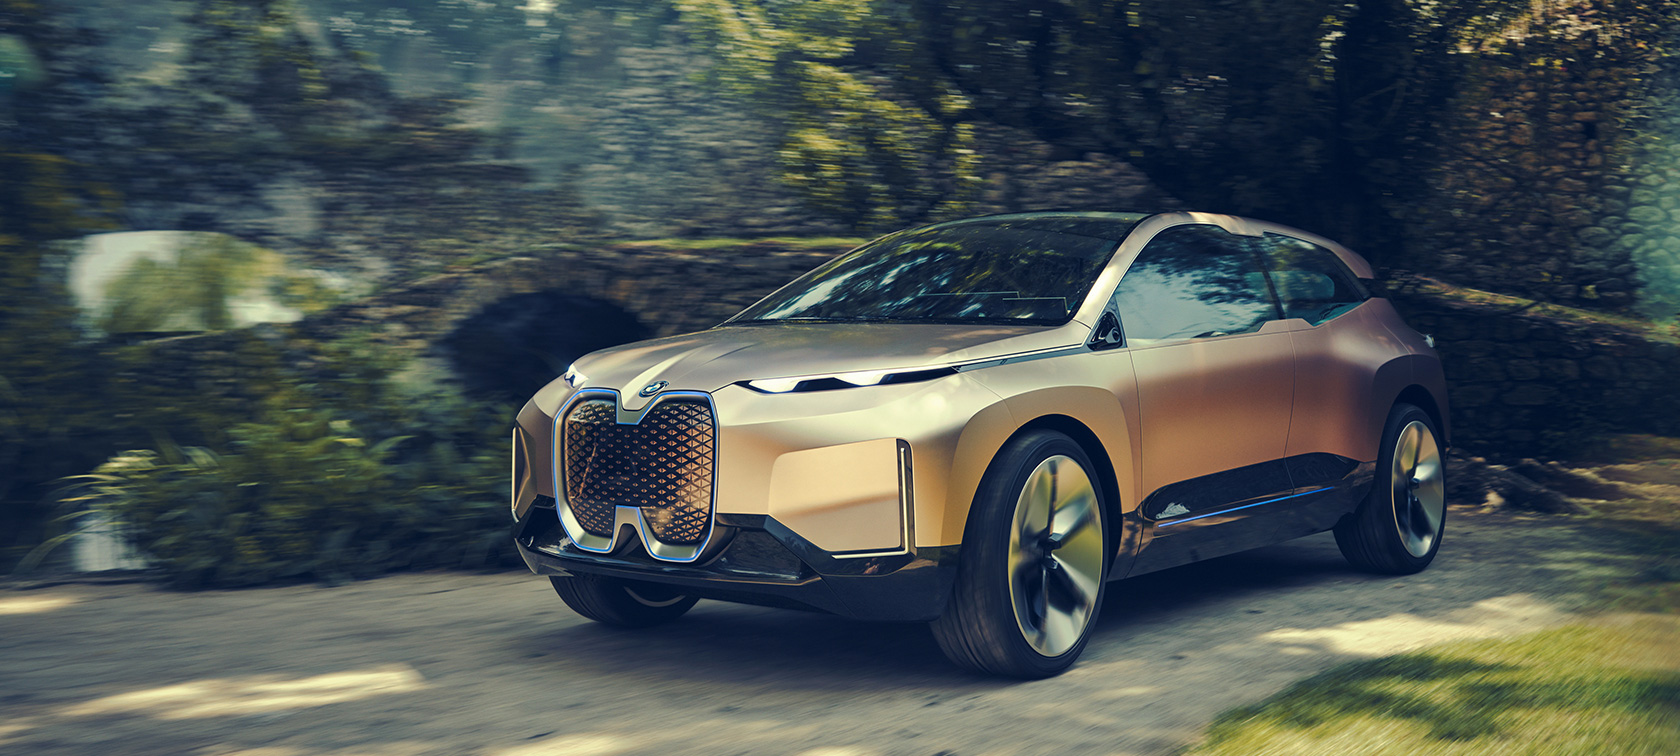 The BMW Vision iNEXT